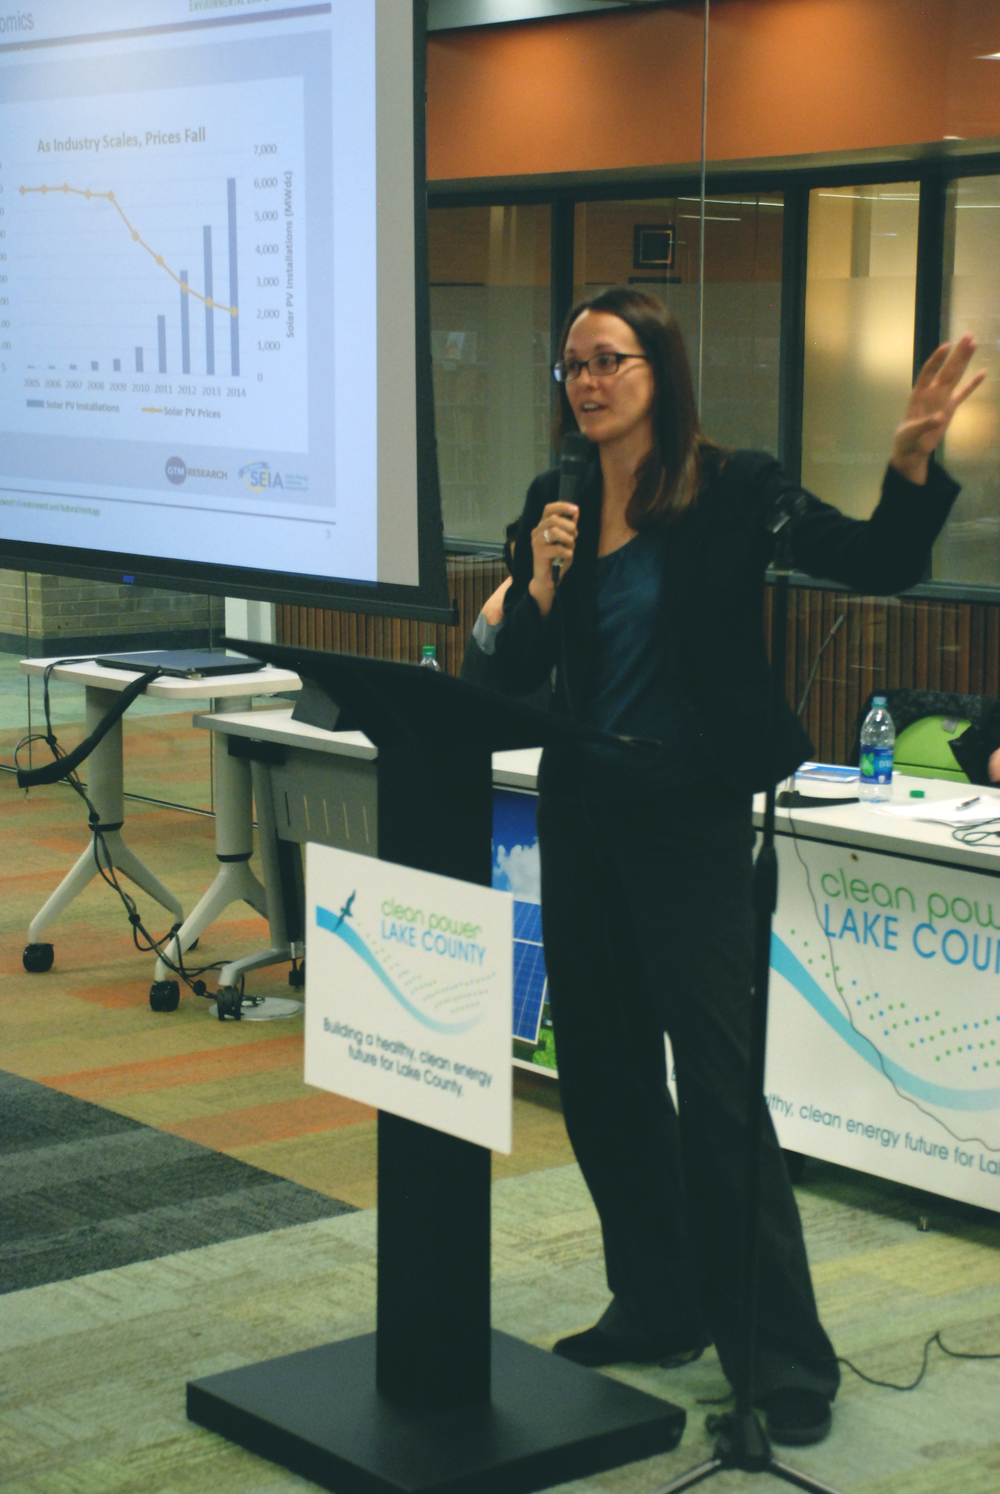 Sarah Wochos informing about transitioning to clean energy